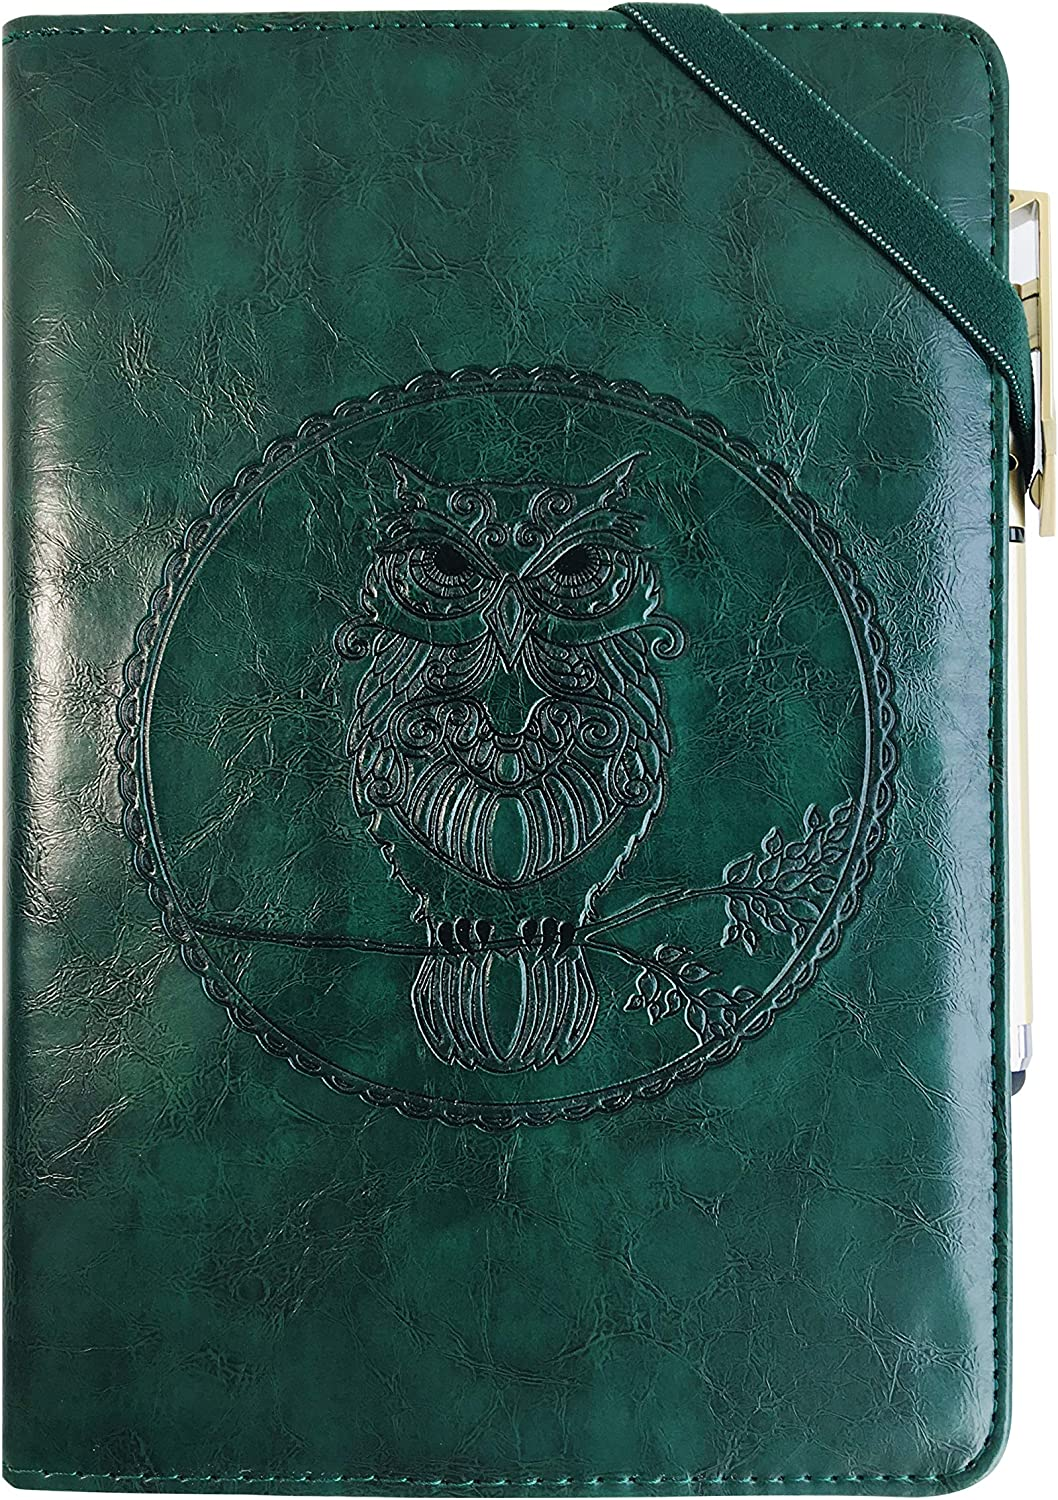 Leather Writing Journal Notebook Gift Set, YANGKUANG Premium PU Leather Embossed Travel Journal Notebook, Mens Journal, Personal Diary, Leather Bound Journal, Refillable, A5 (Green Owl)